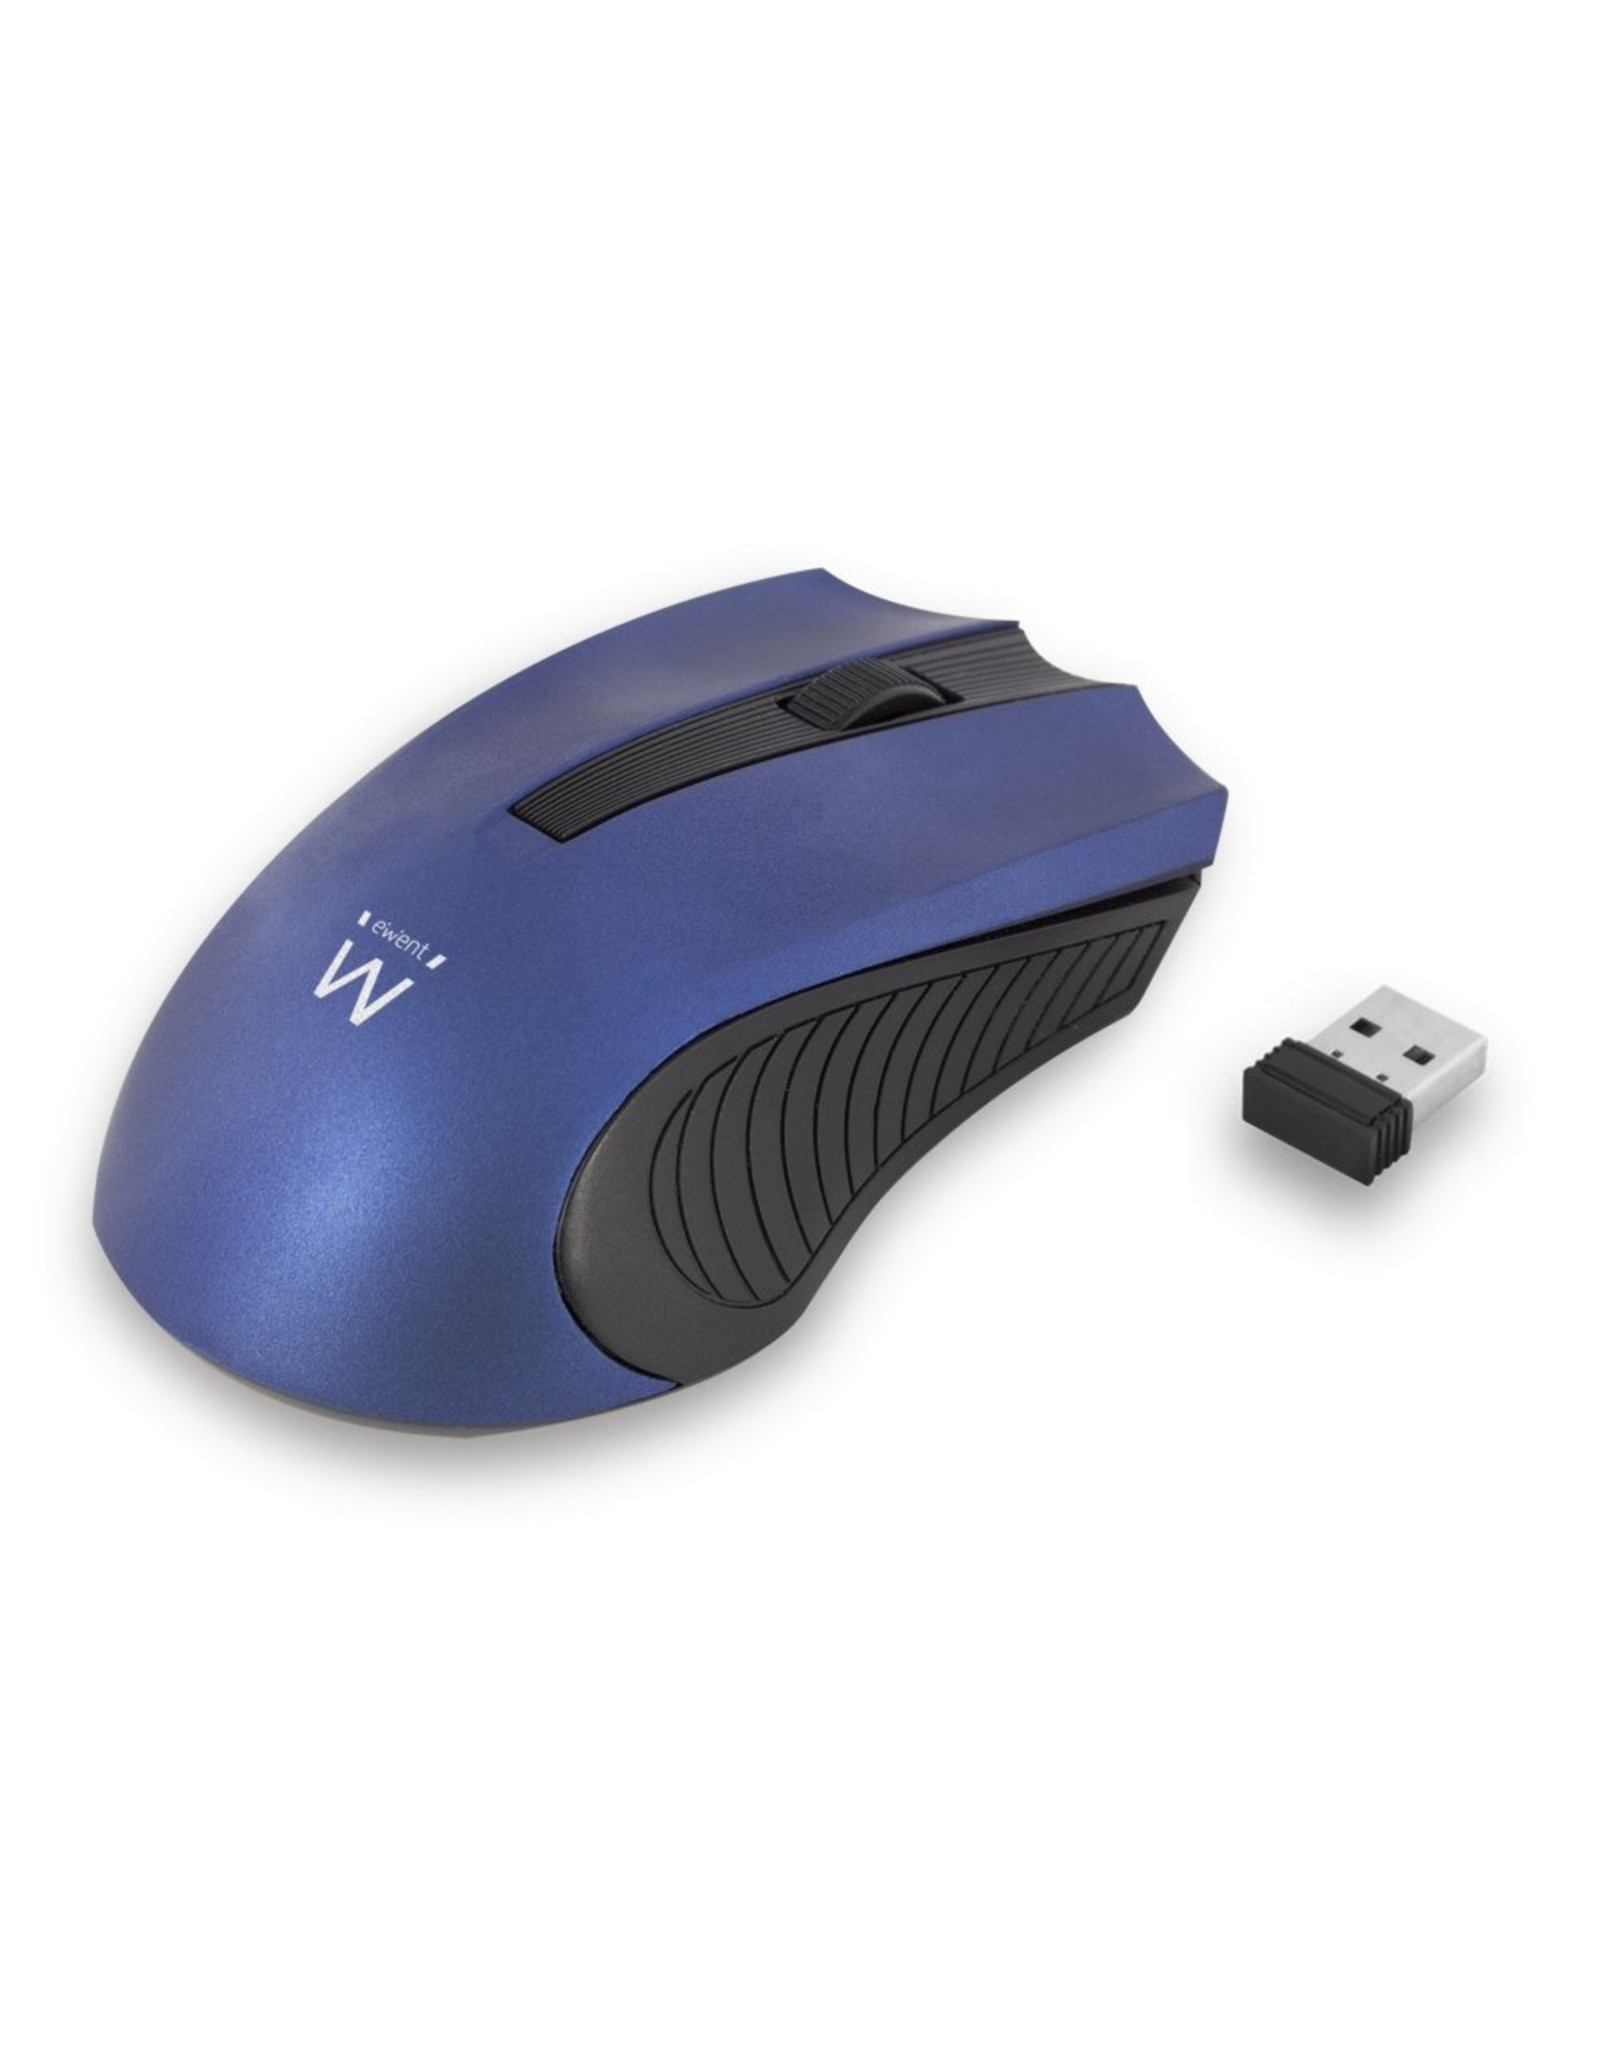 Ewent Wireless mouse blue 1000dpi